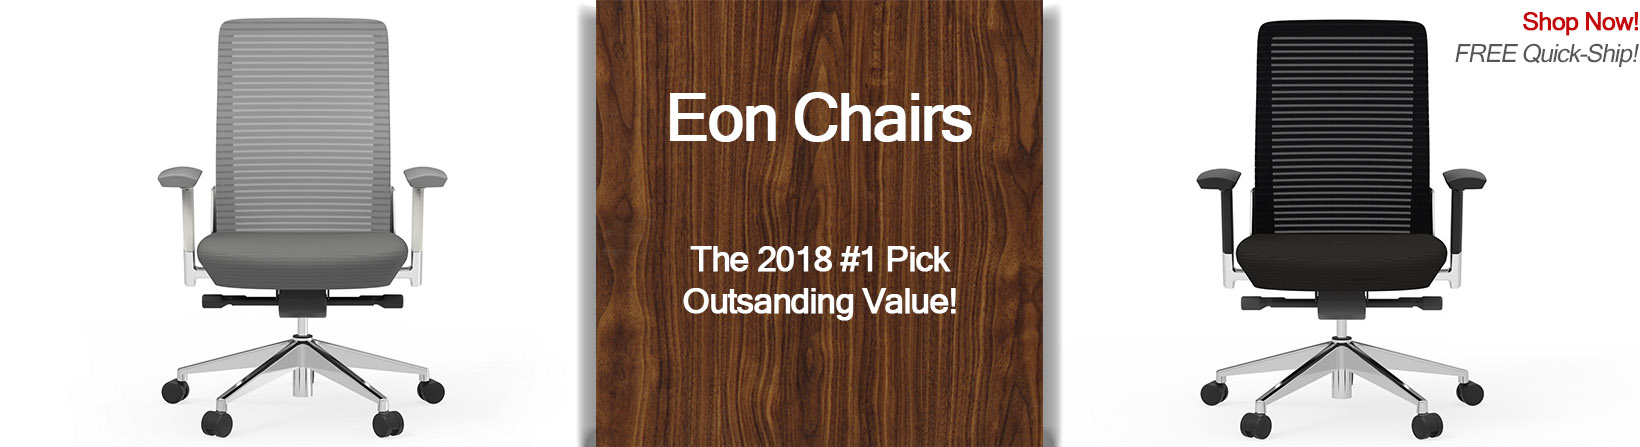 Cherryman Eon Chairs on Sale